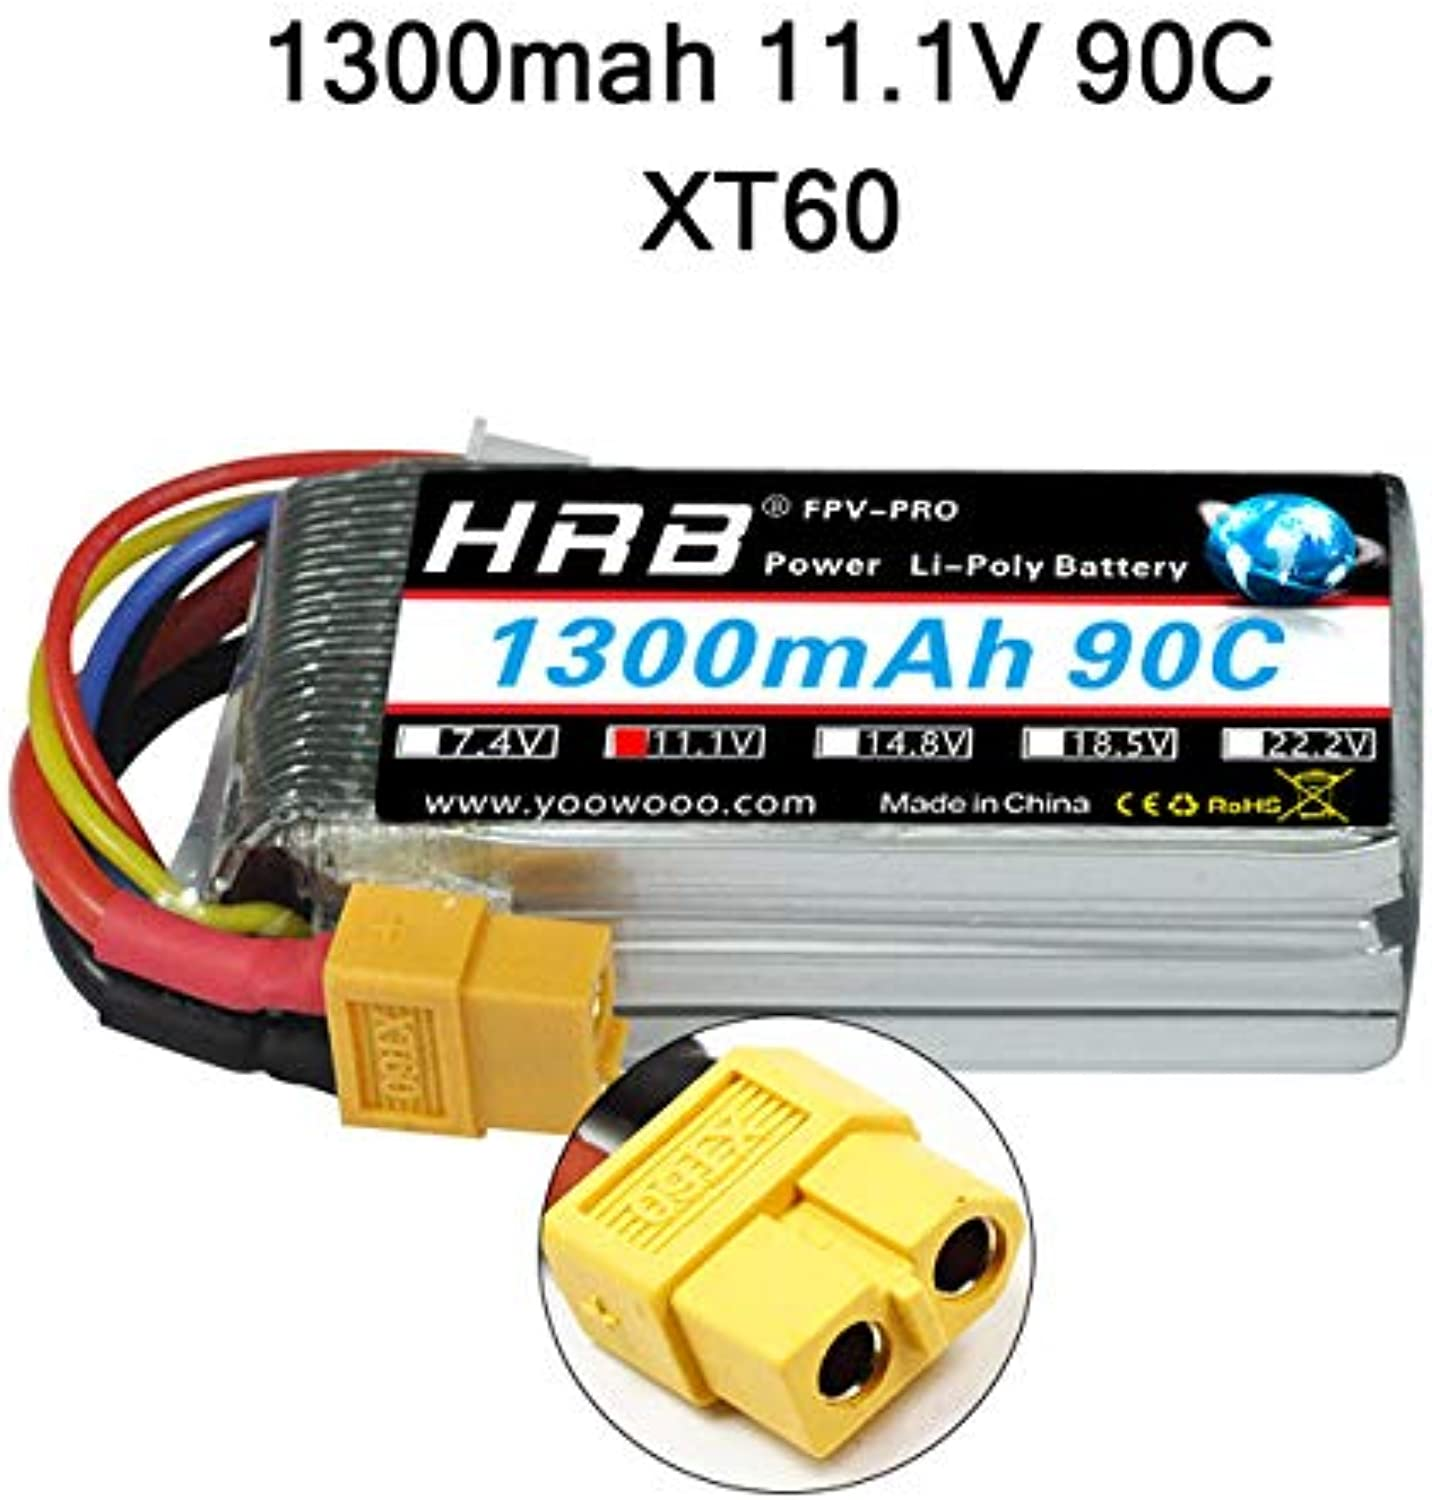 Accessories HRB 1800mah Lipo Battery 2S 3S 4S 2200mah 5000mah 6000mah 2600mah 11.1V 7.4V 14.8V 5S 6S XT60 Deans T TRX Airplane RC Parts Car  (color  1300mah 11.1V XT60, Delivery from 15 to 20 Days)